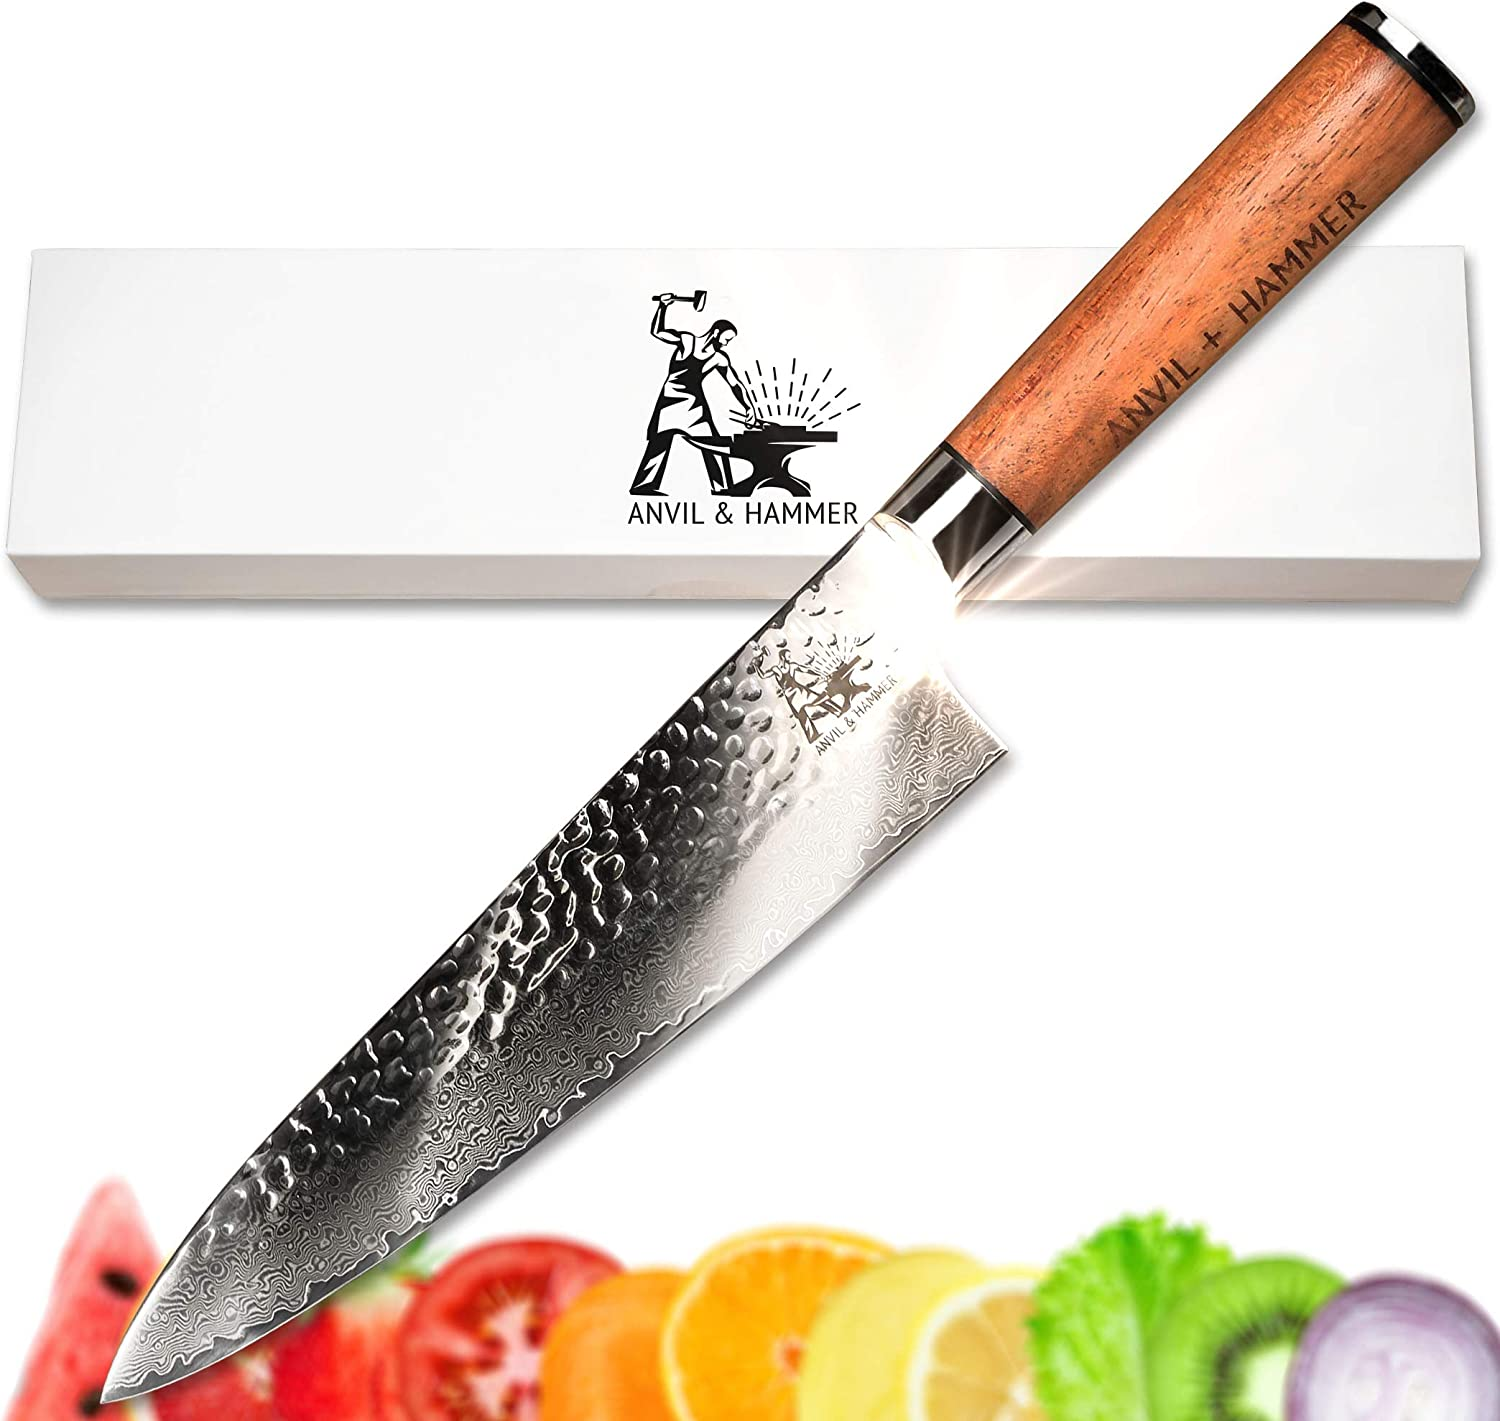 "Damascus Chef Knife - Kitchen Knife - 67 Layer 8"" VG-10 Japanese Super Steel Hammer Finish Blade - Full Tang African Rosewood Handle - Presented in Gorgeous Gift Box by Anvil and Hammer"